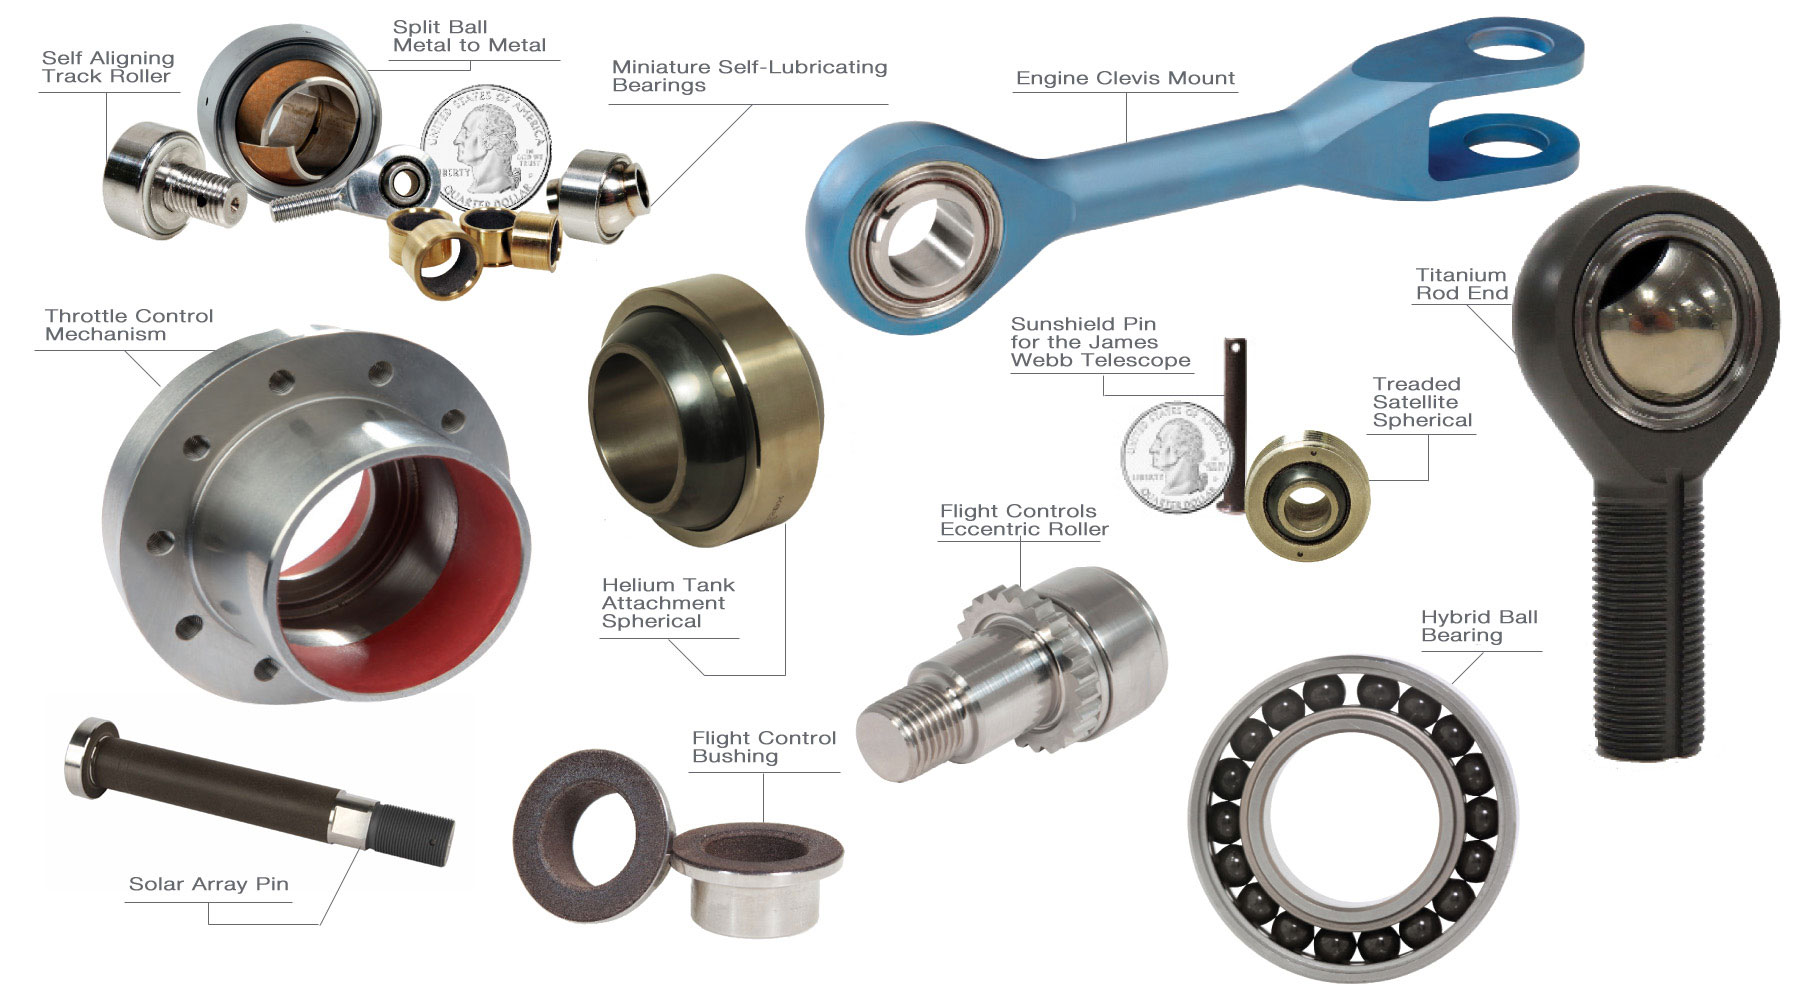 Kamatics Specialty Bearings for Space